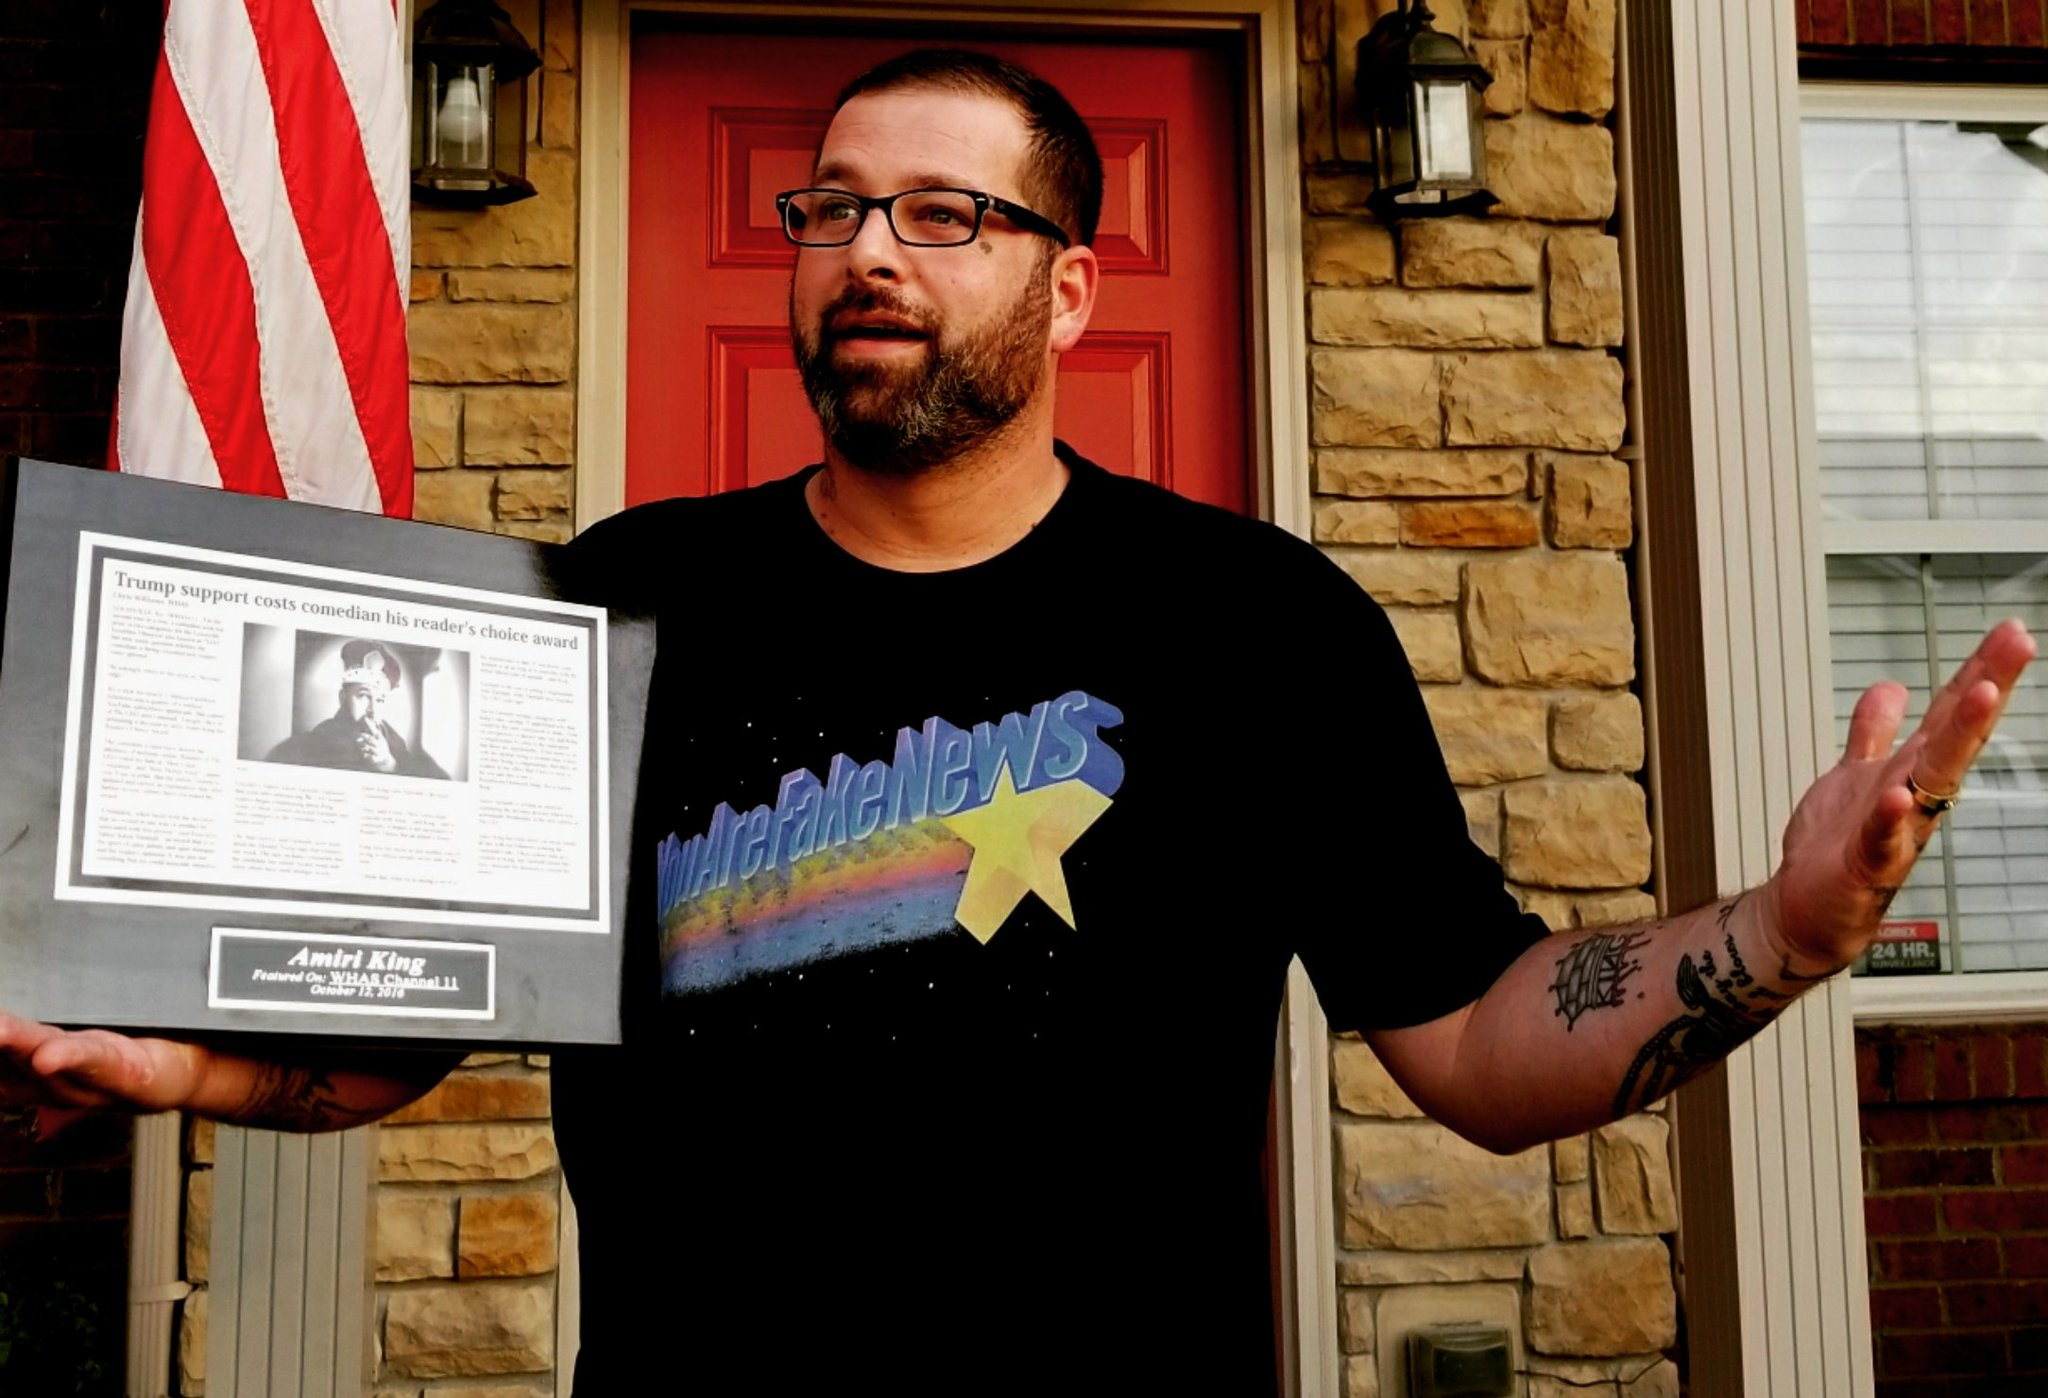 Amiri King On Twitter To Order This Shirt And Support Veteran